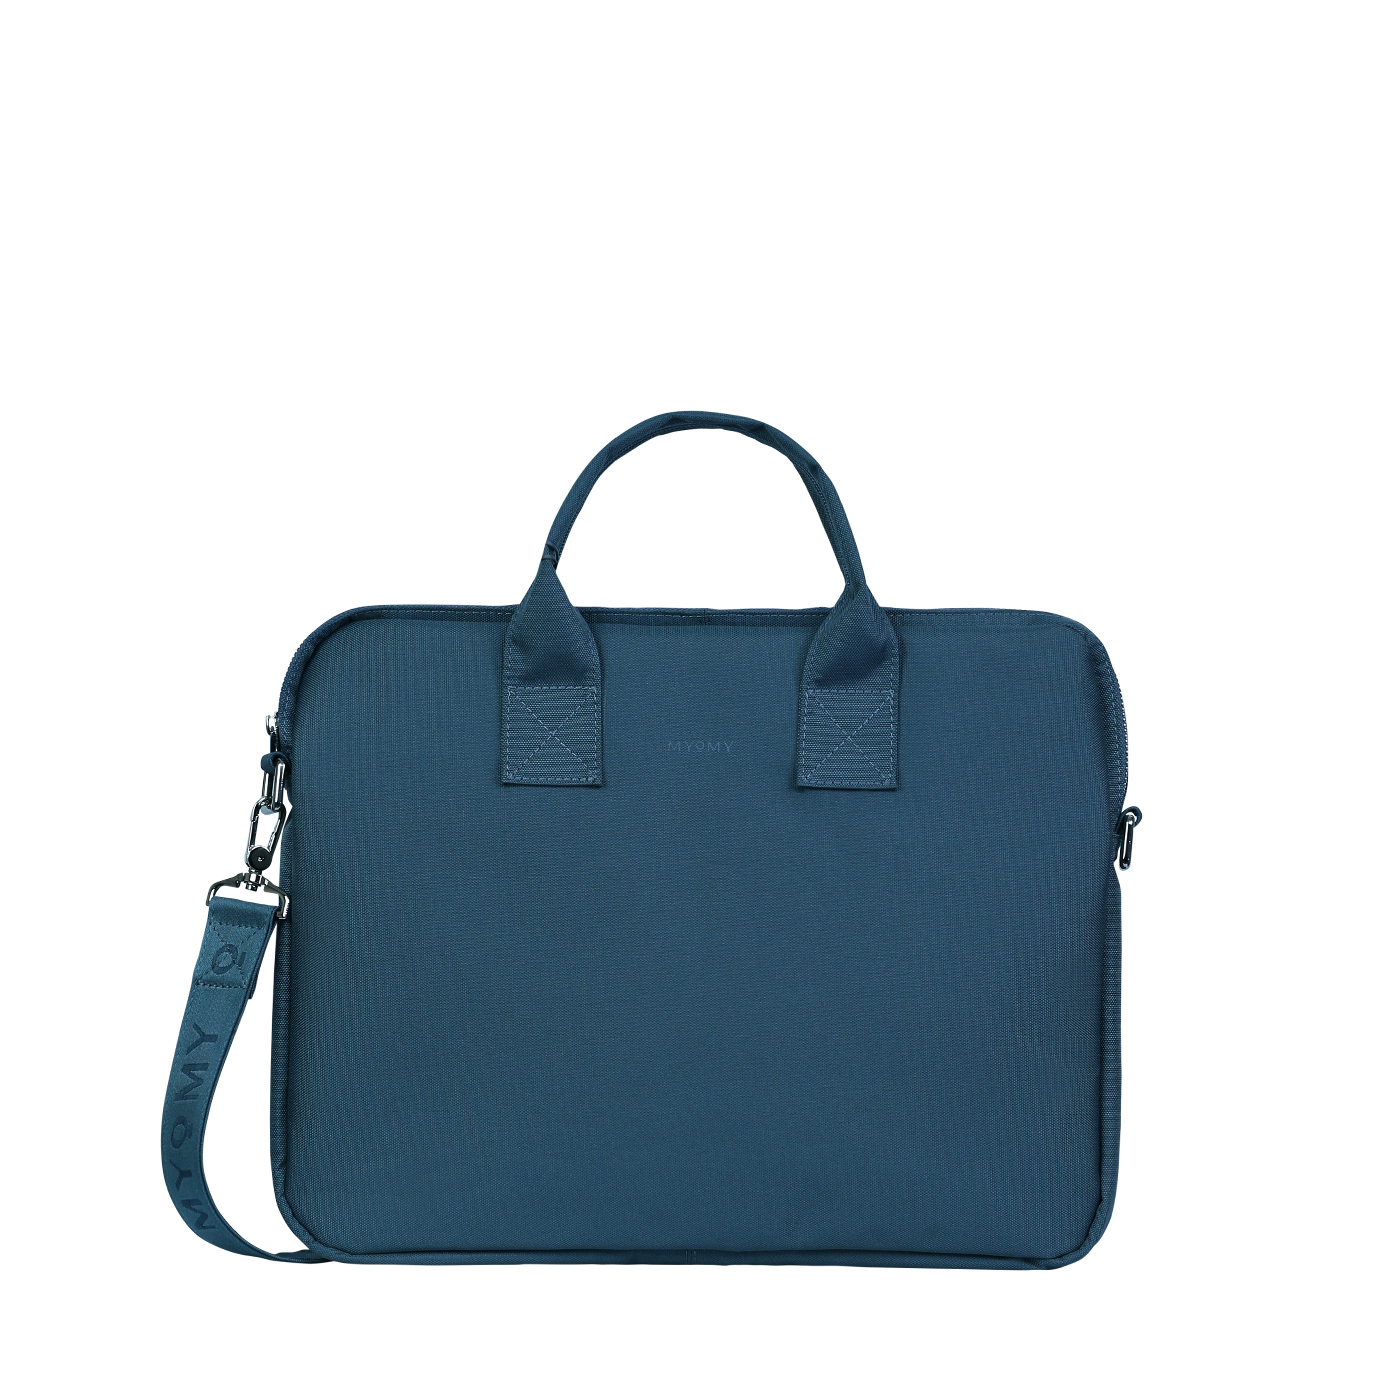 MY PHILIP BAG Laptop - RPET Blue